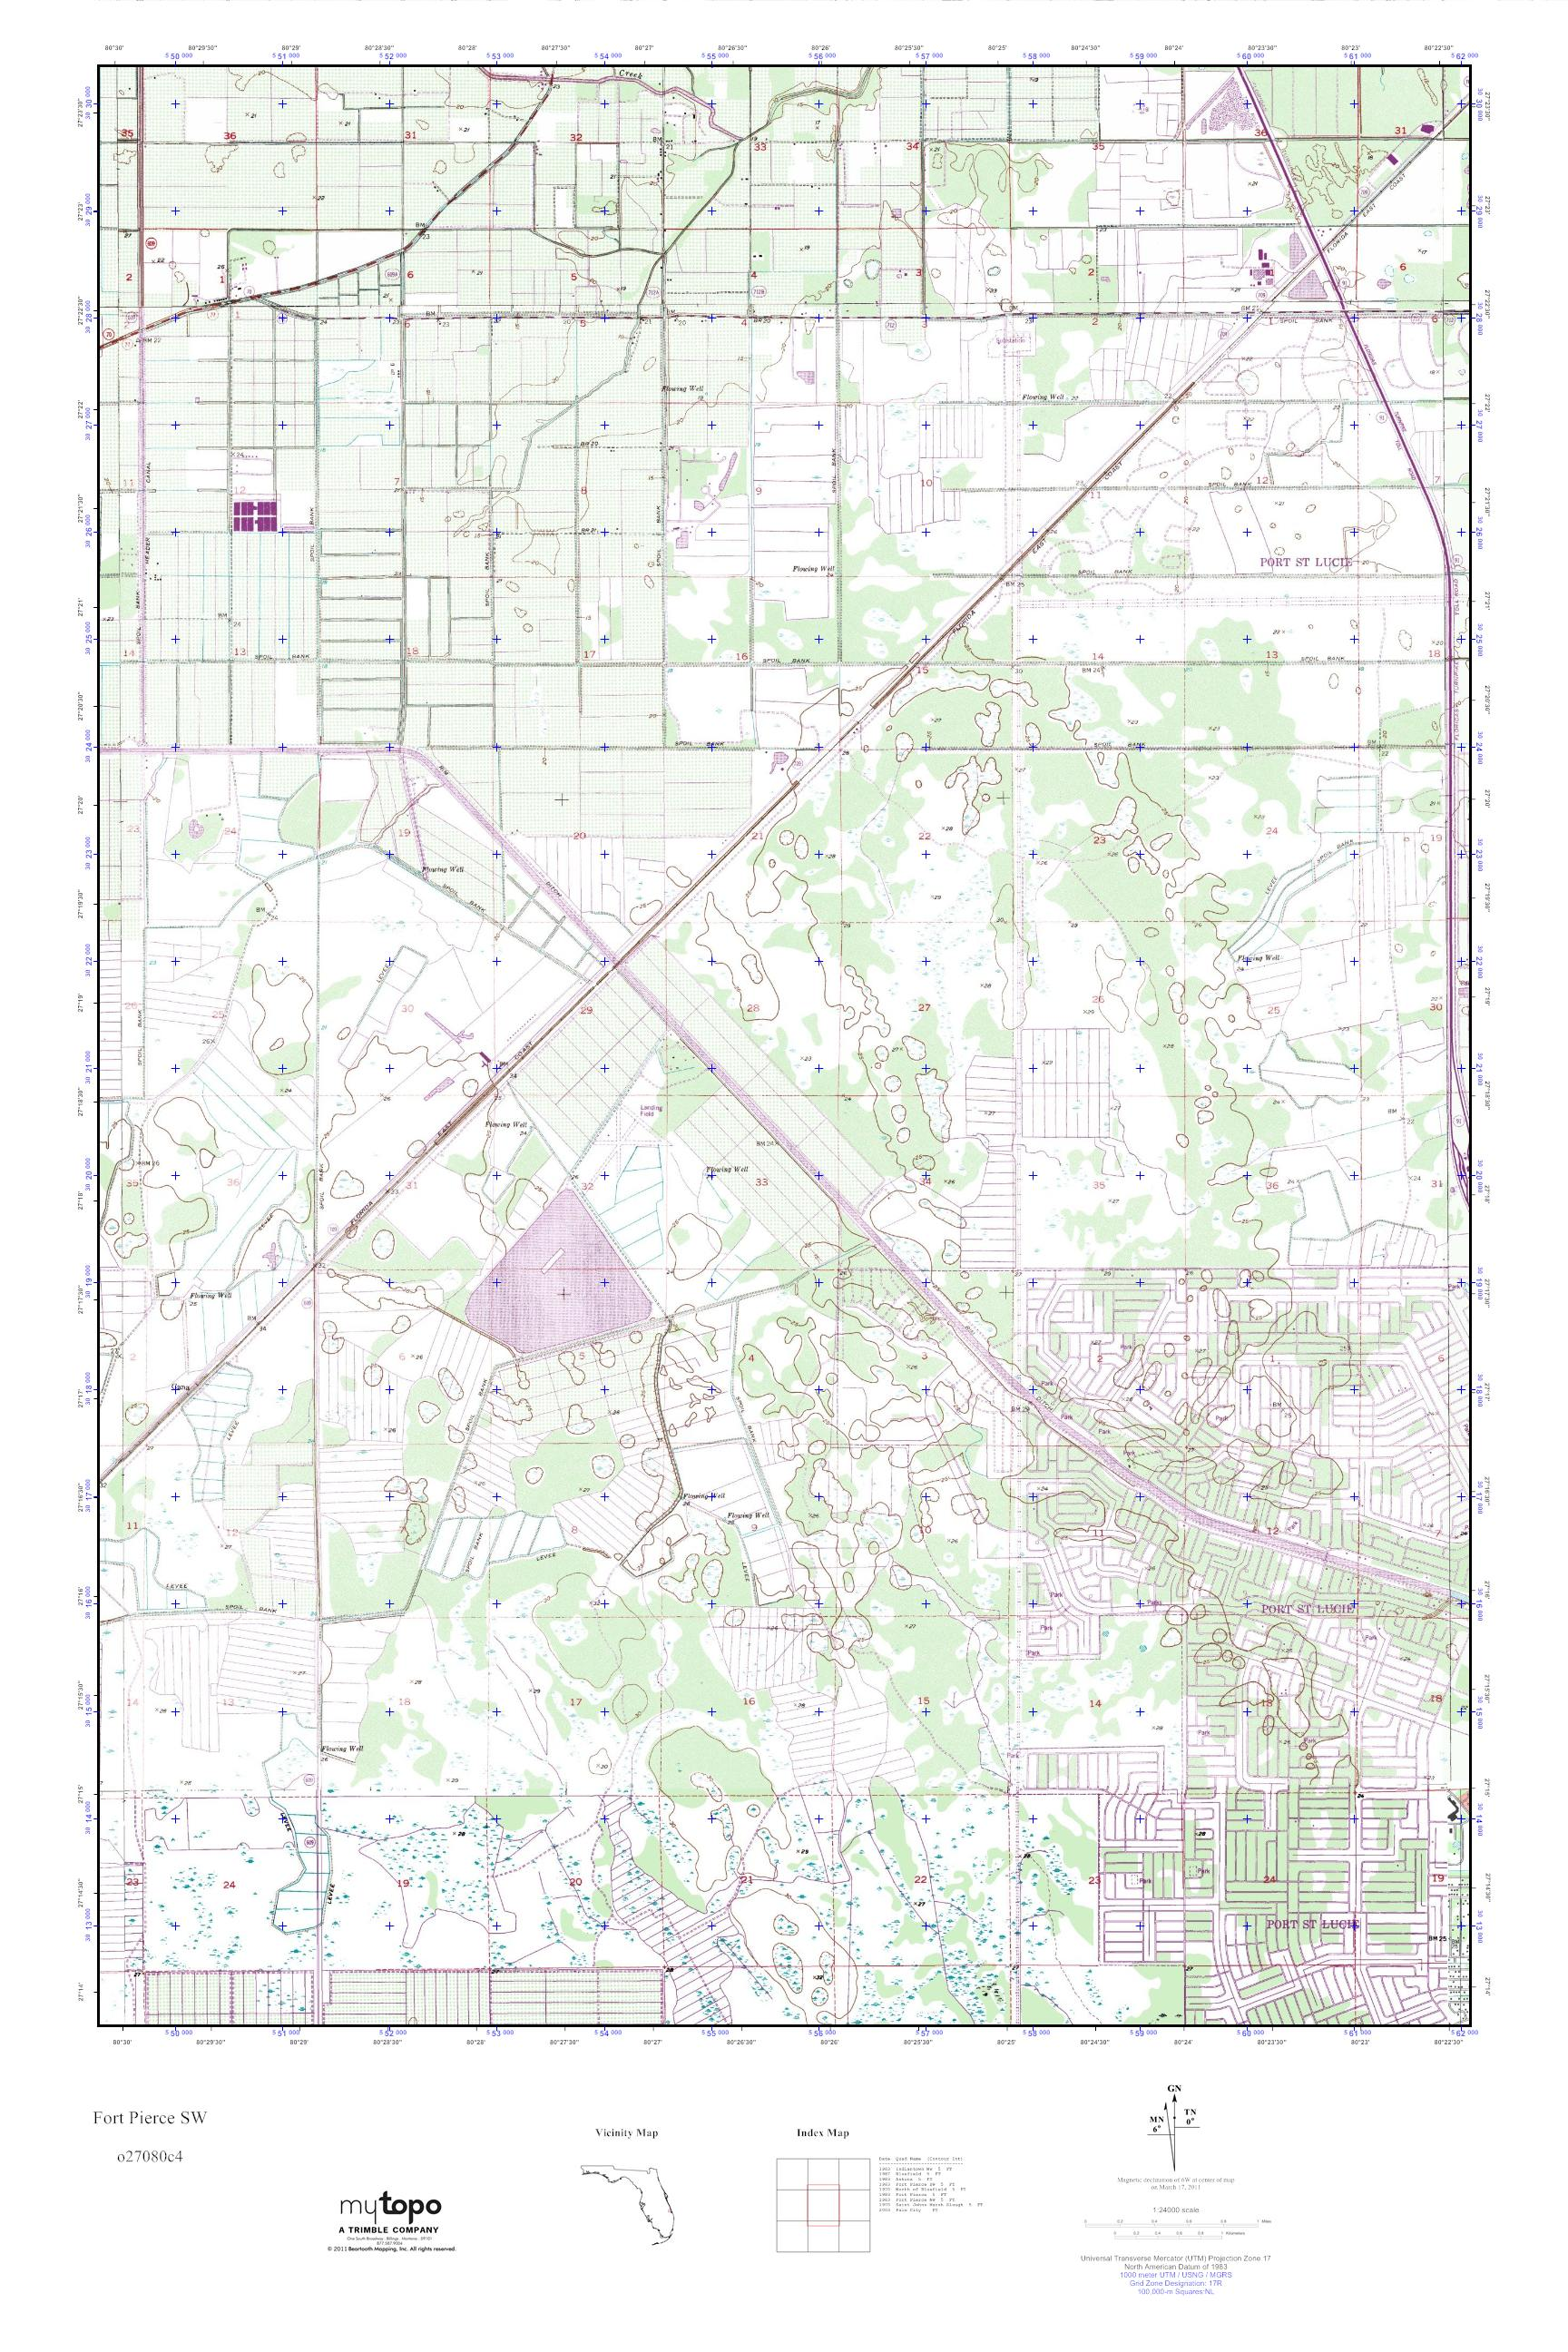 Sw Florida Map.Mytopo Fort Pierce Sw Florida Usgs Quad Topo Map